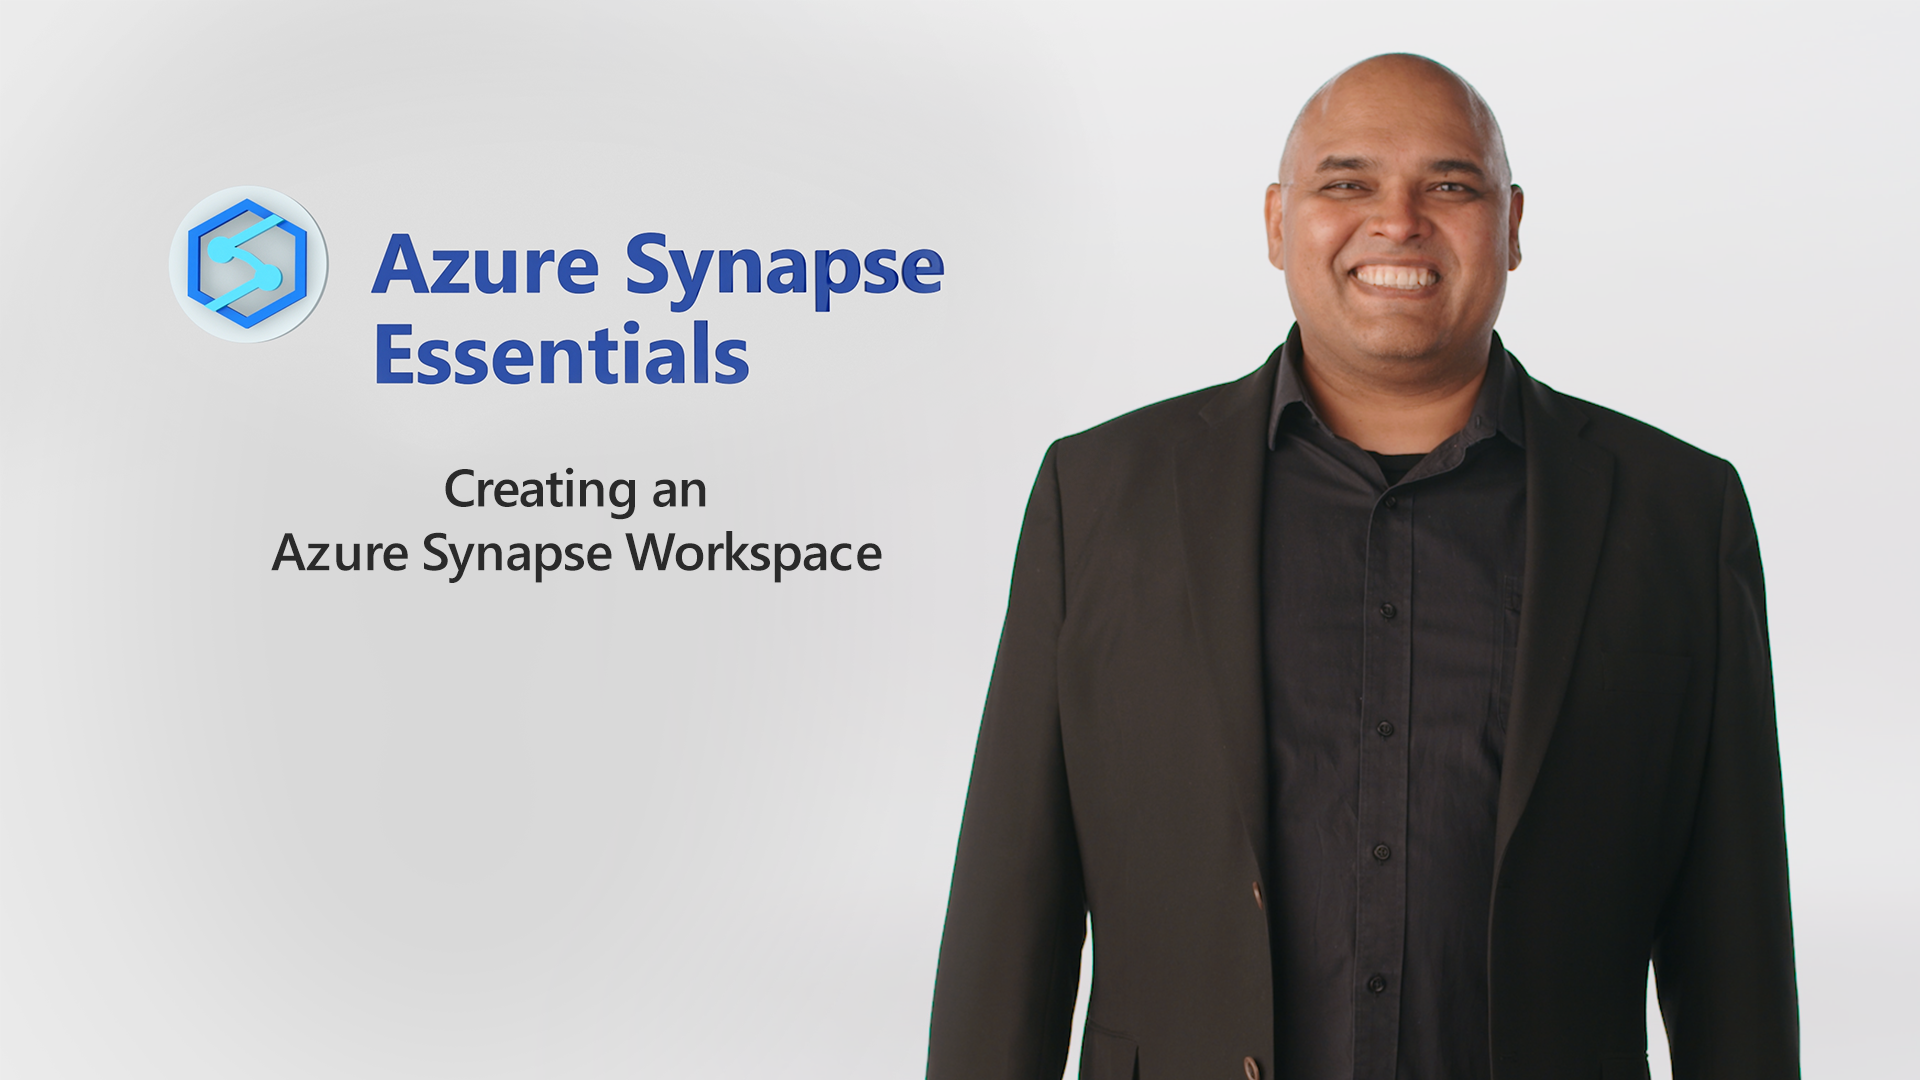 Creating an Azure Synapse workspace